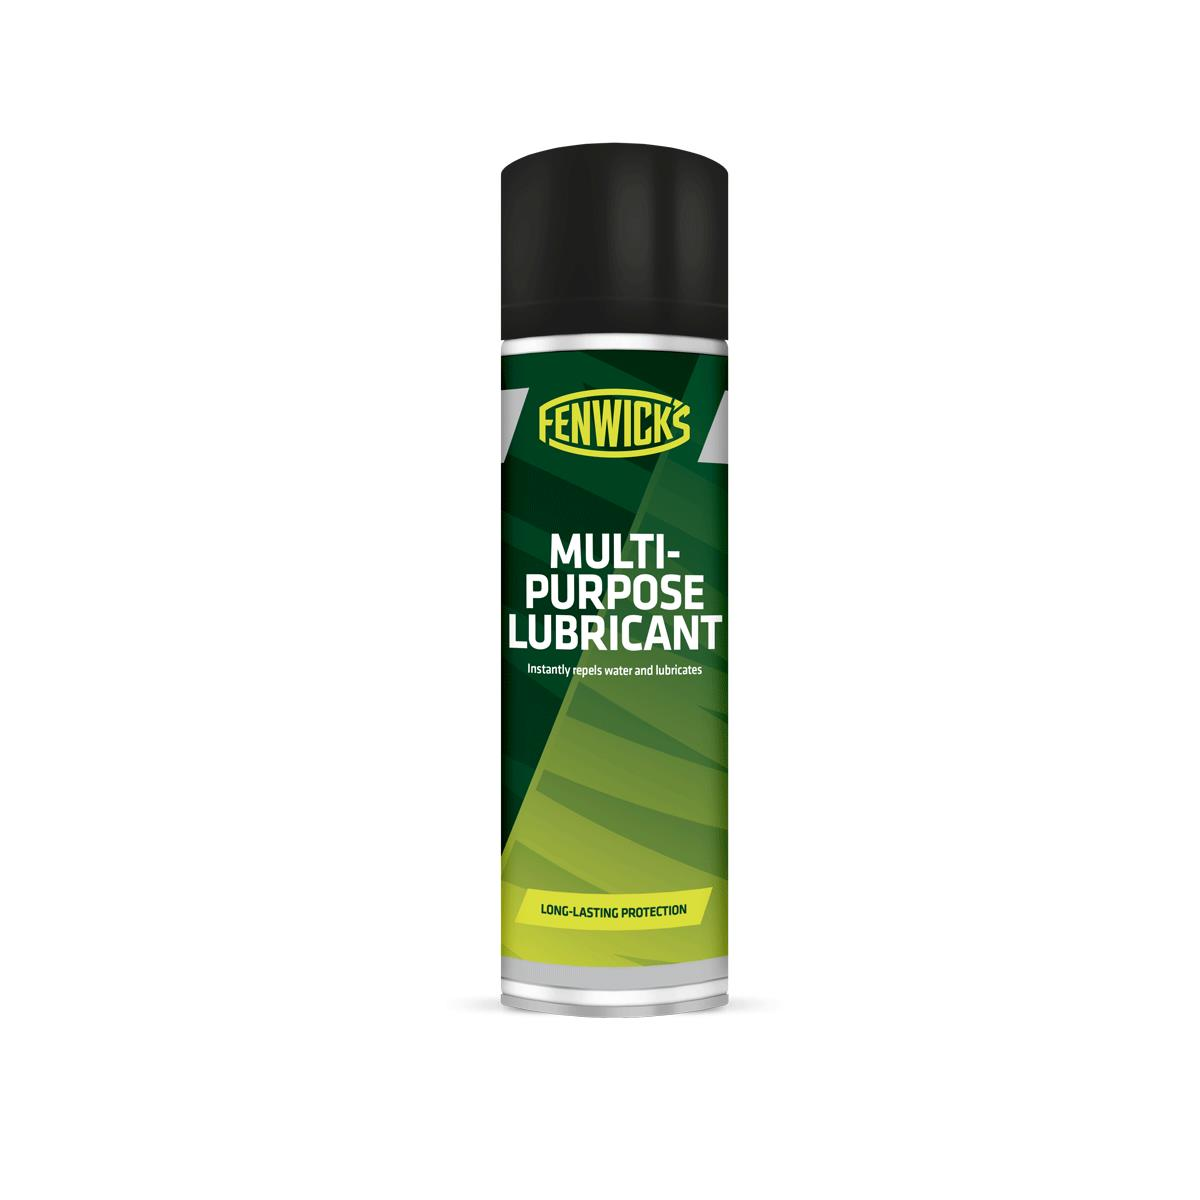 Fenwick's Multi Purpose Lubricant (500ml)